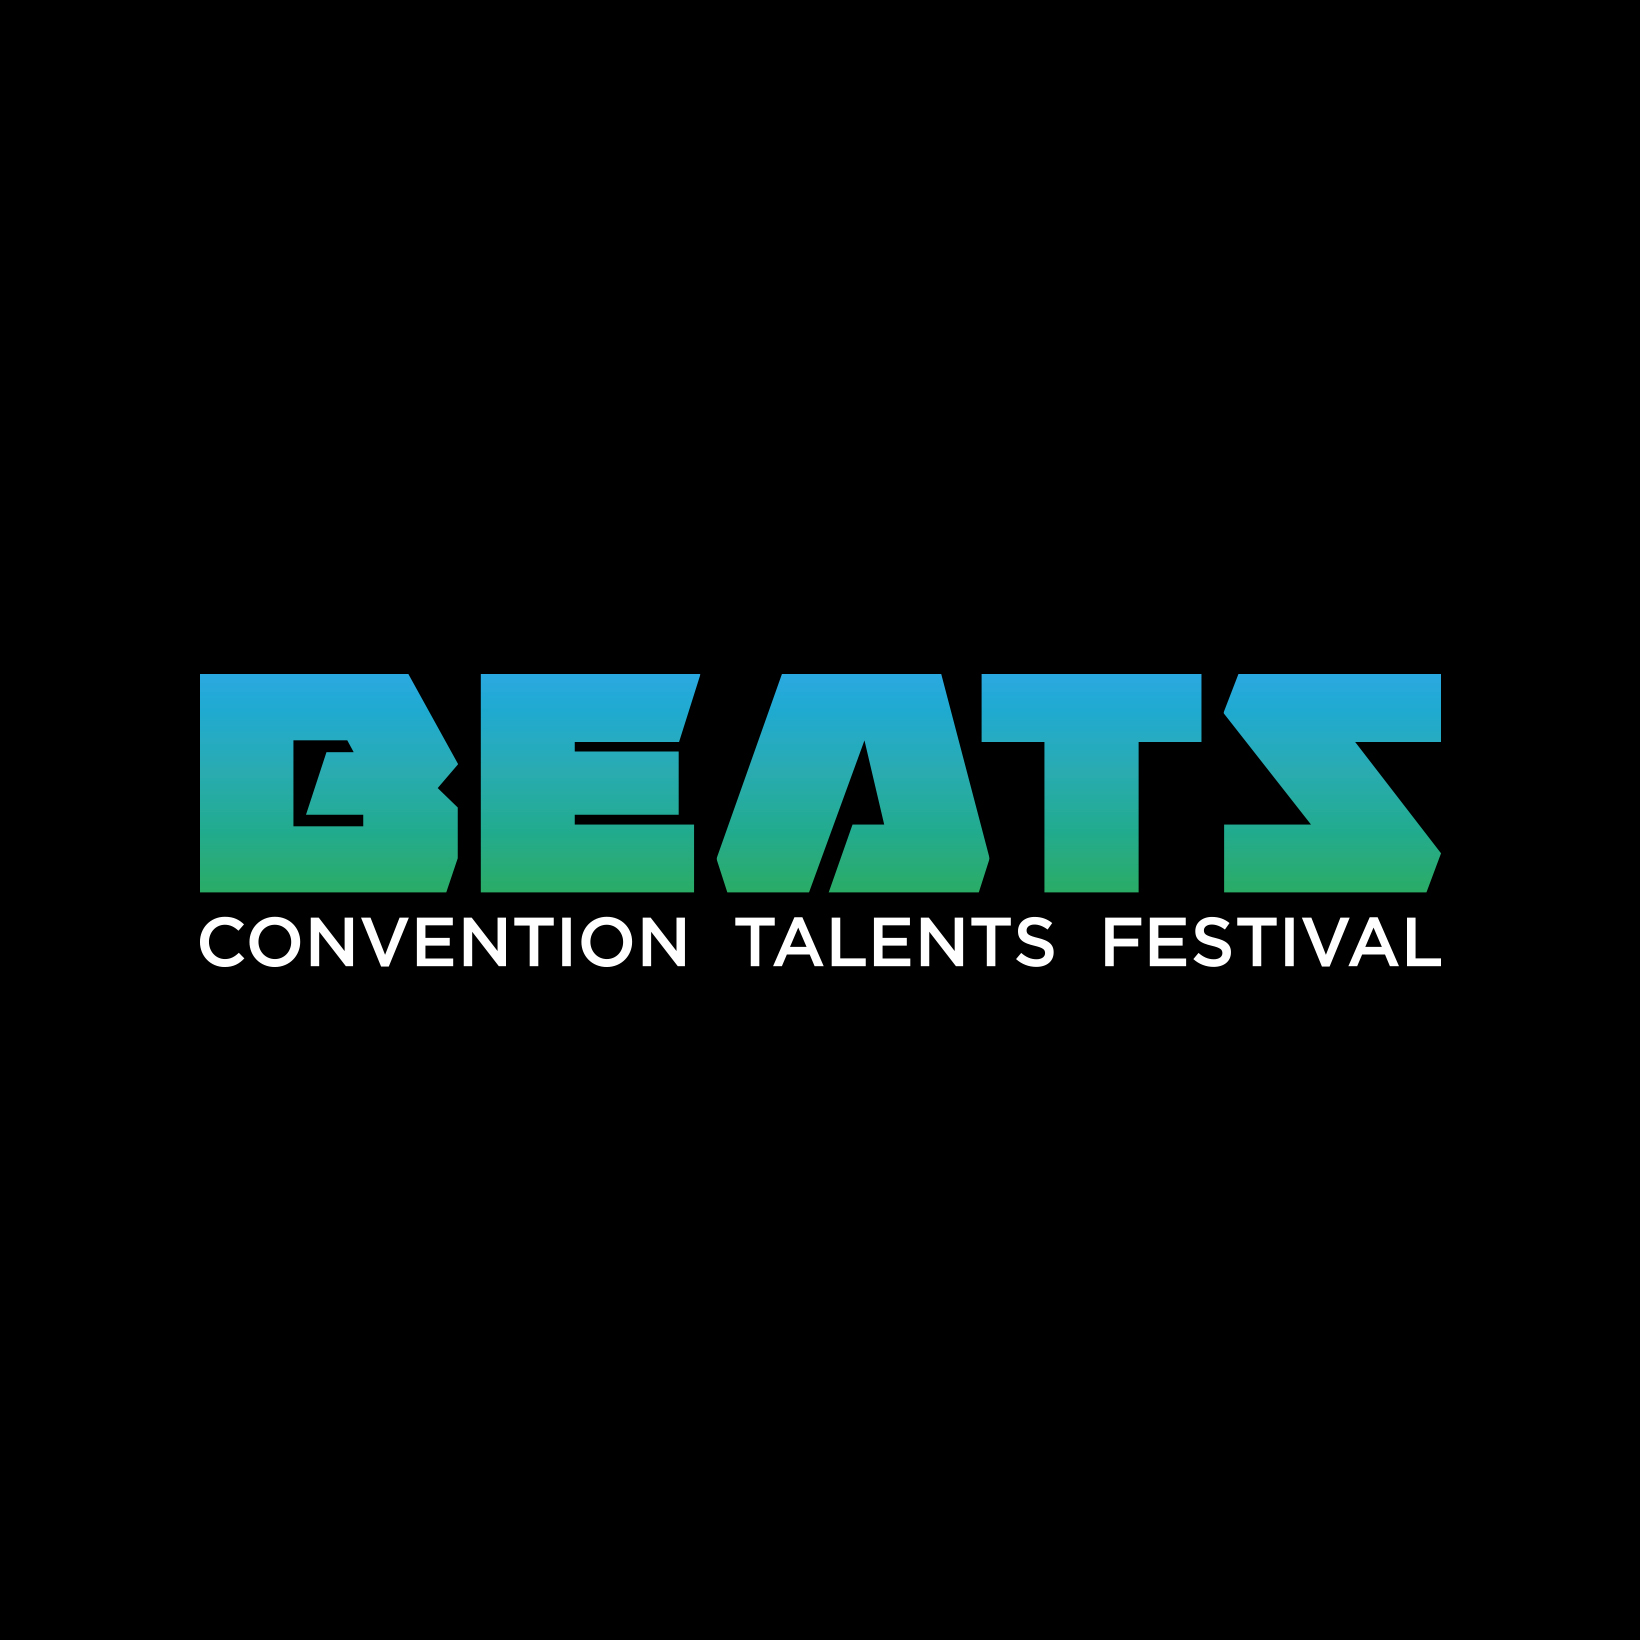 Our Convention for the Urban and Hip Hop Community